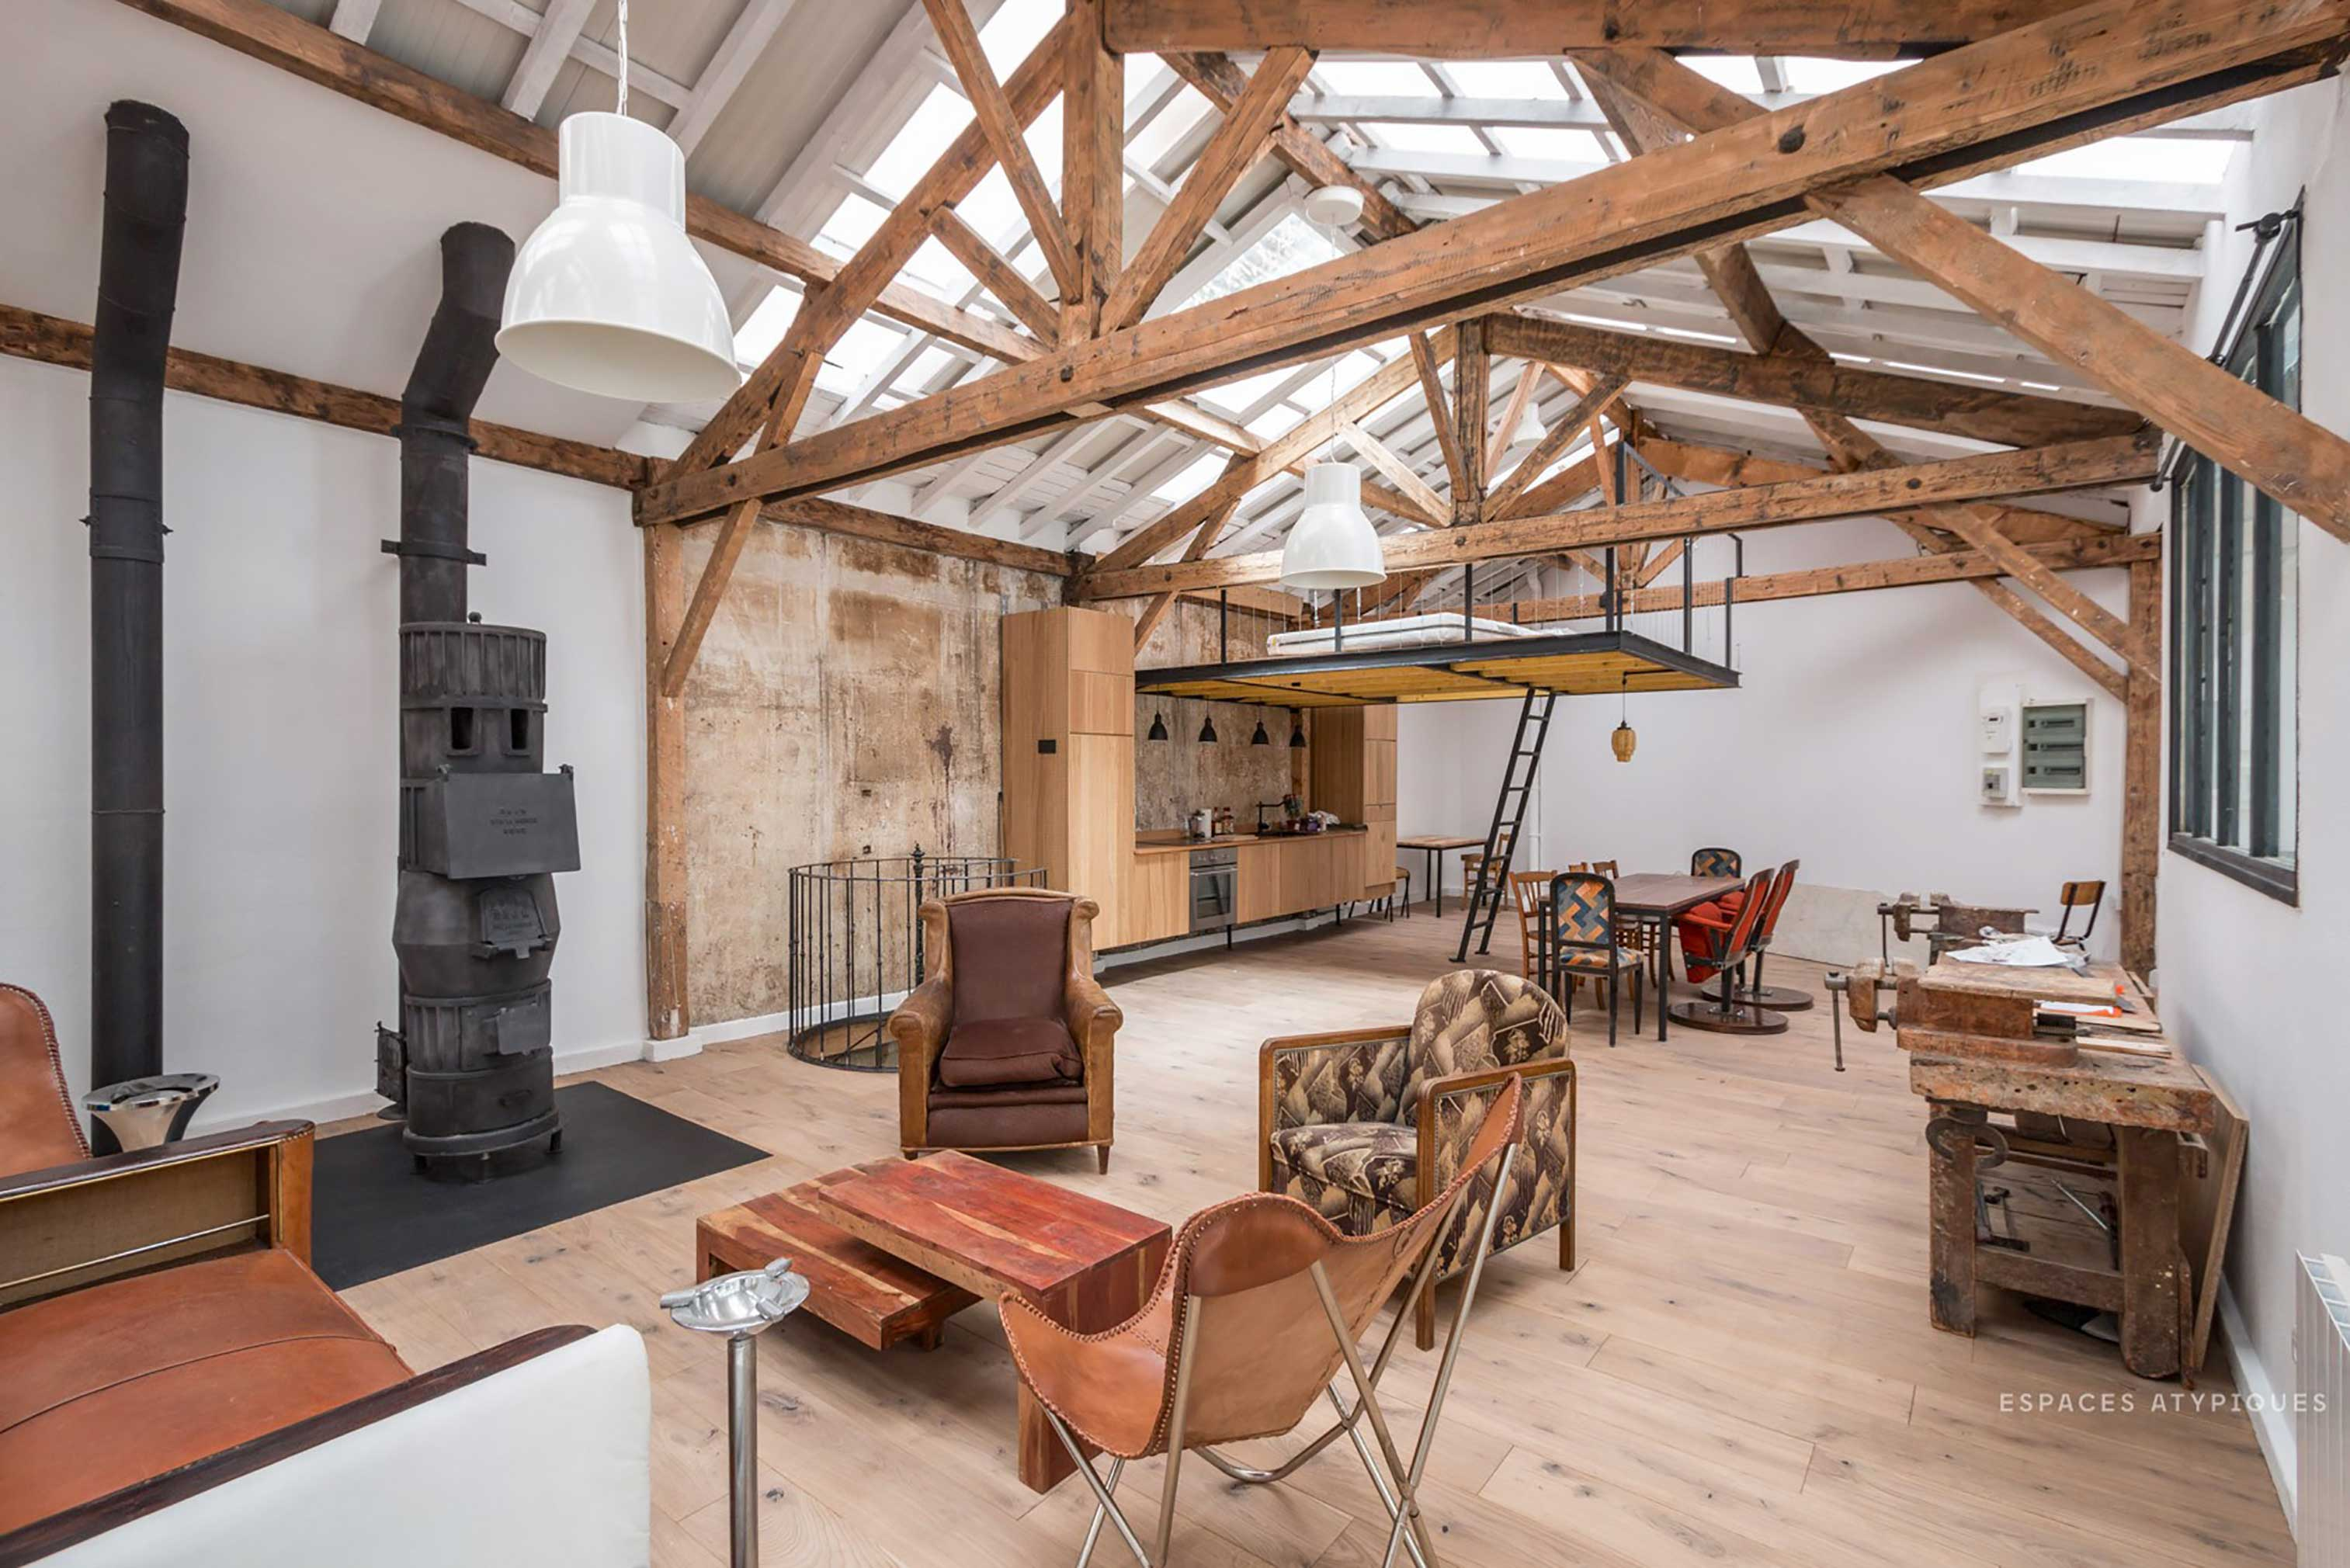 Converted carpenter s workshop hits the market in paris for Surfaces atypiques paris